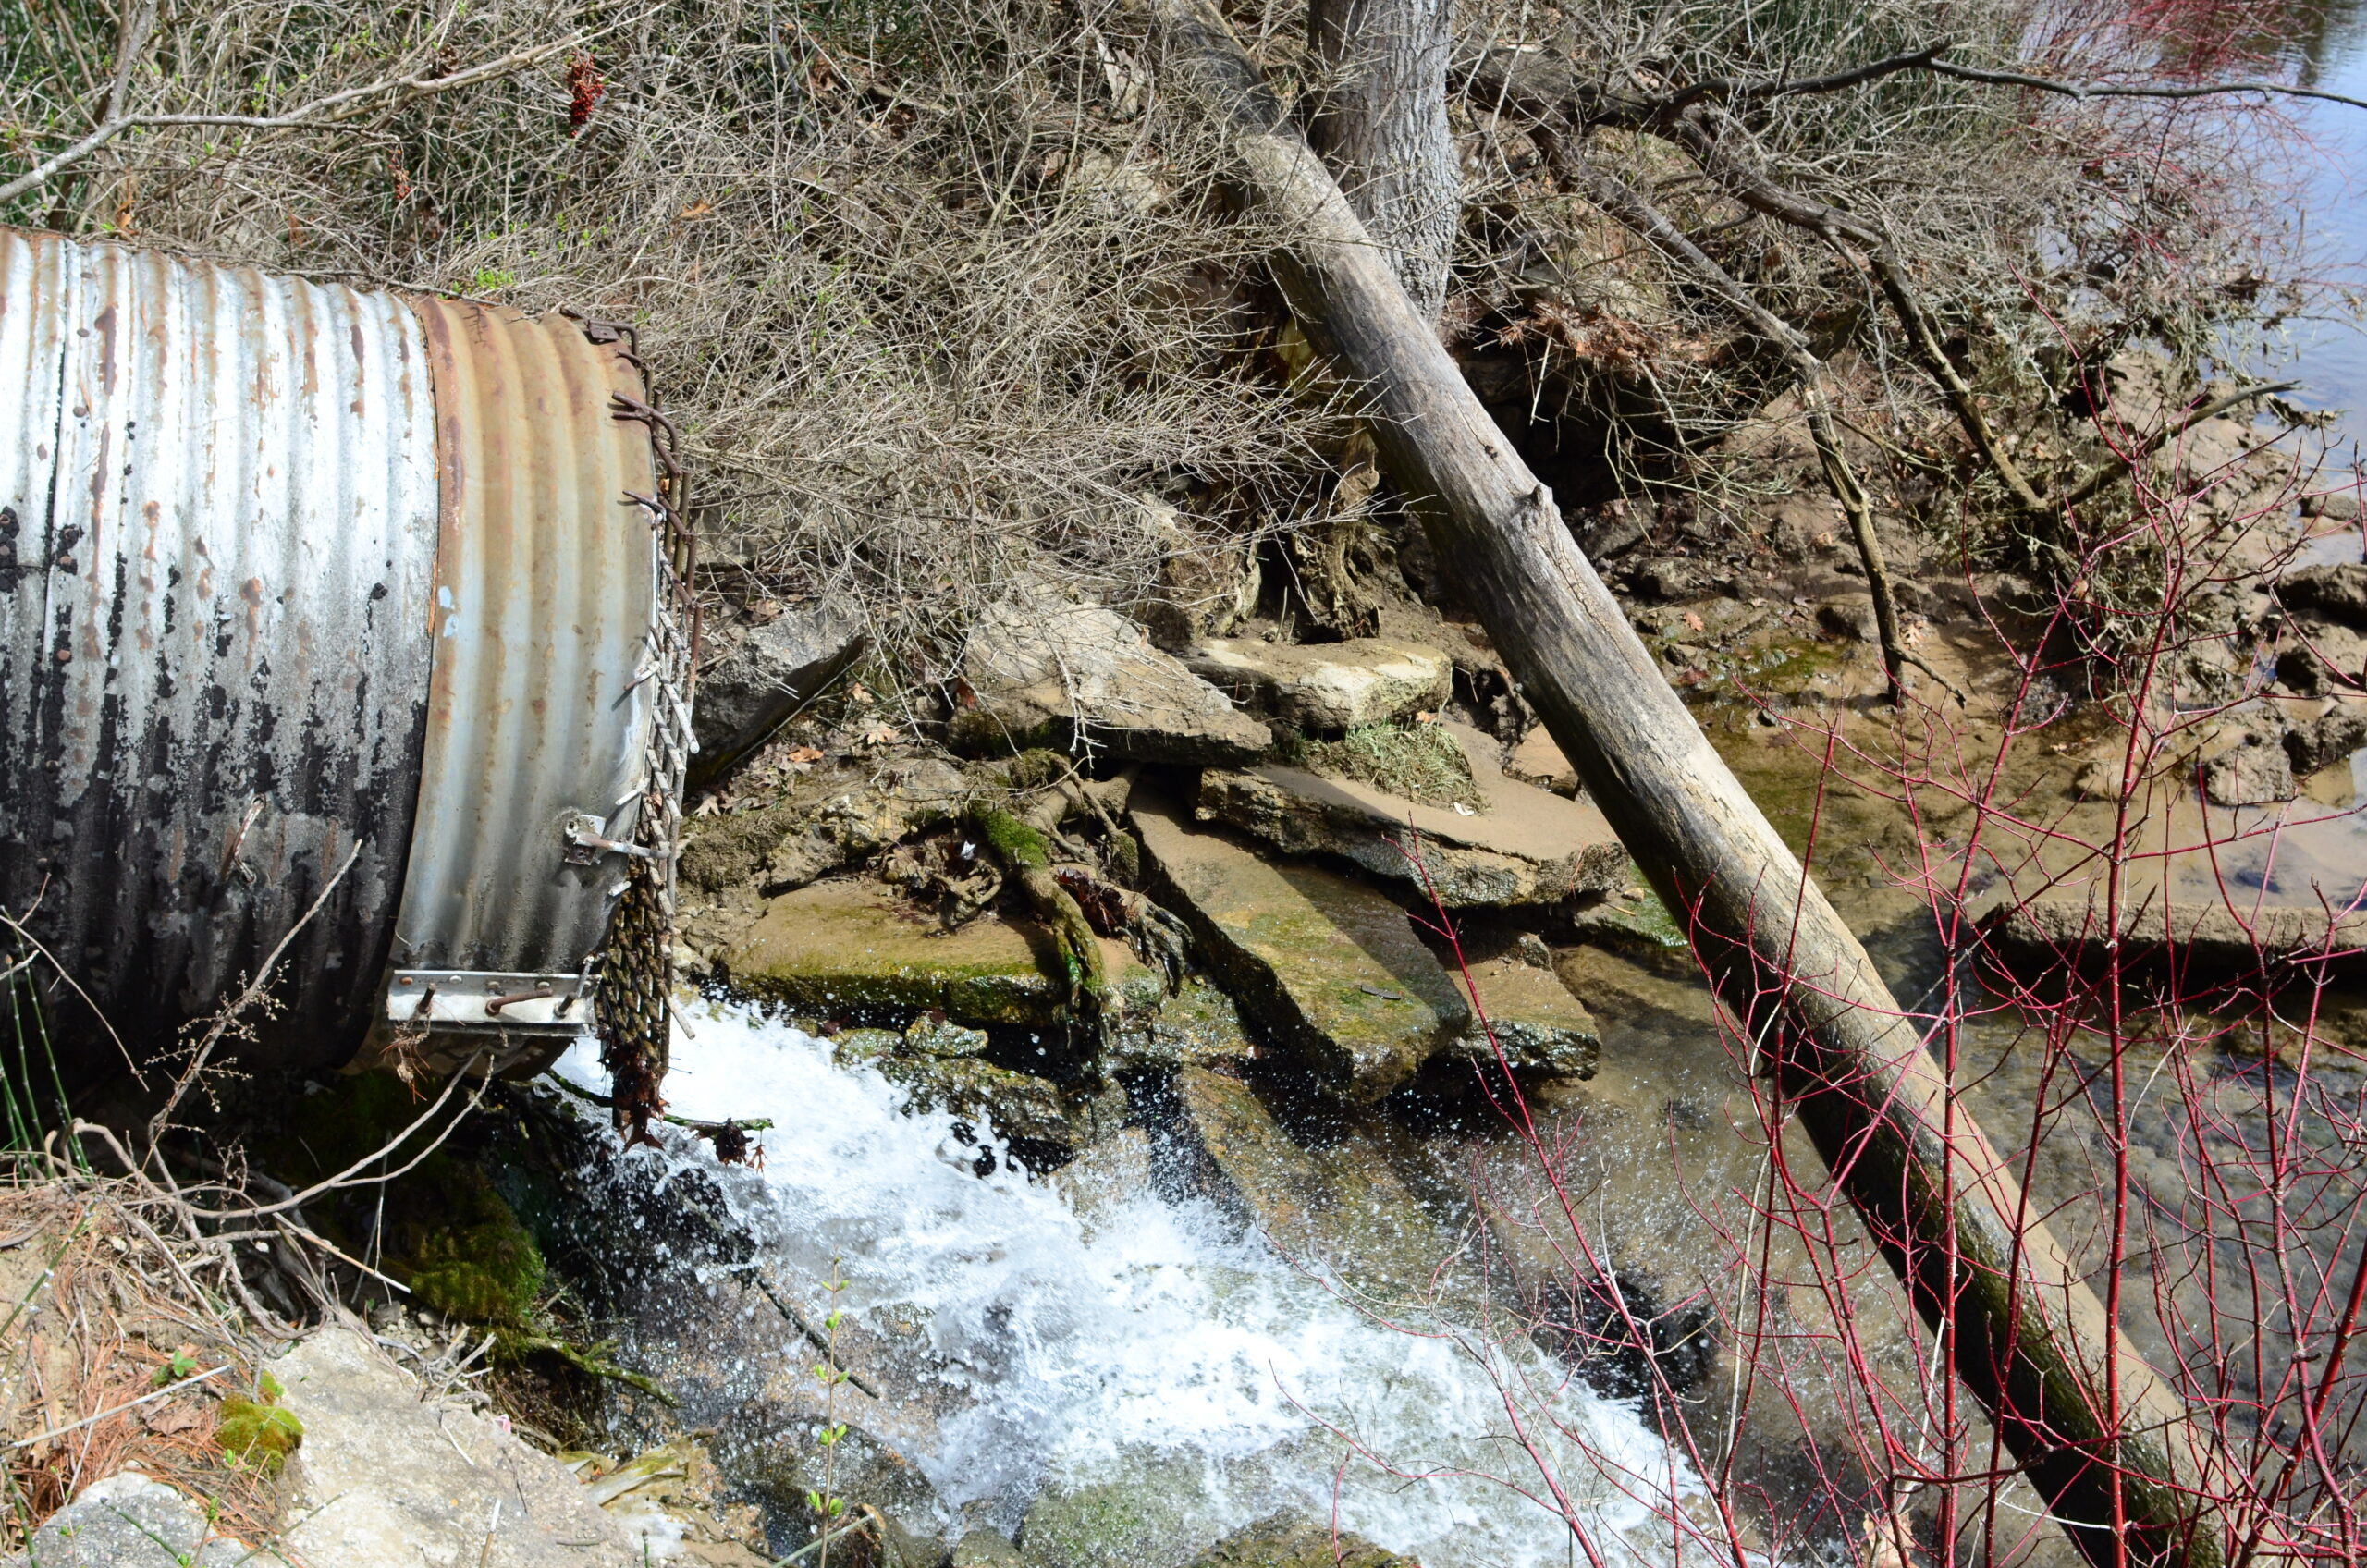 As Congress tries to regulate 'forever chemicals,' local water systems push back